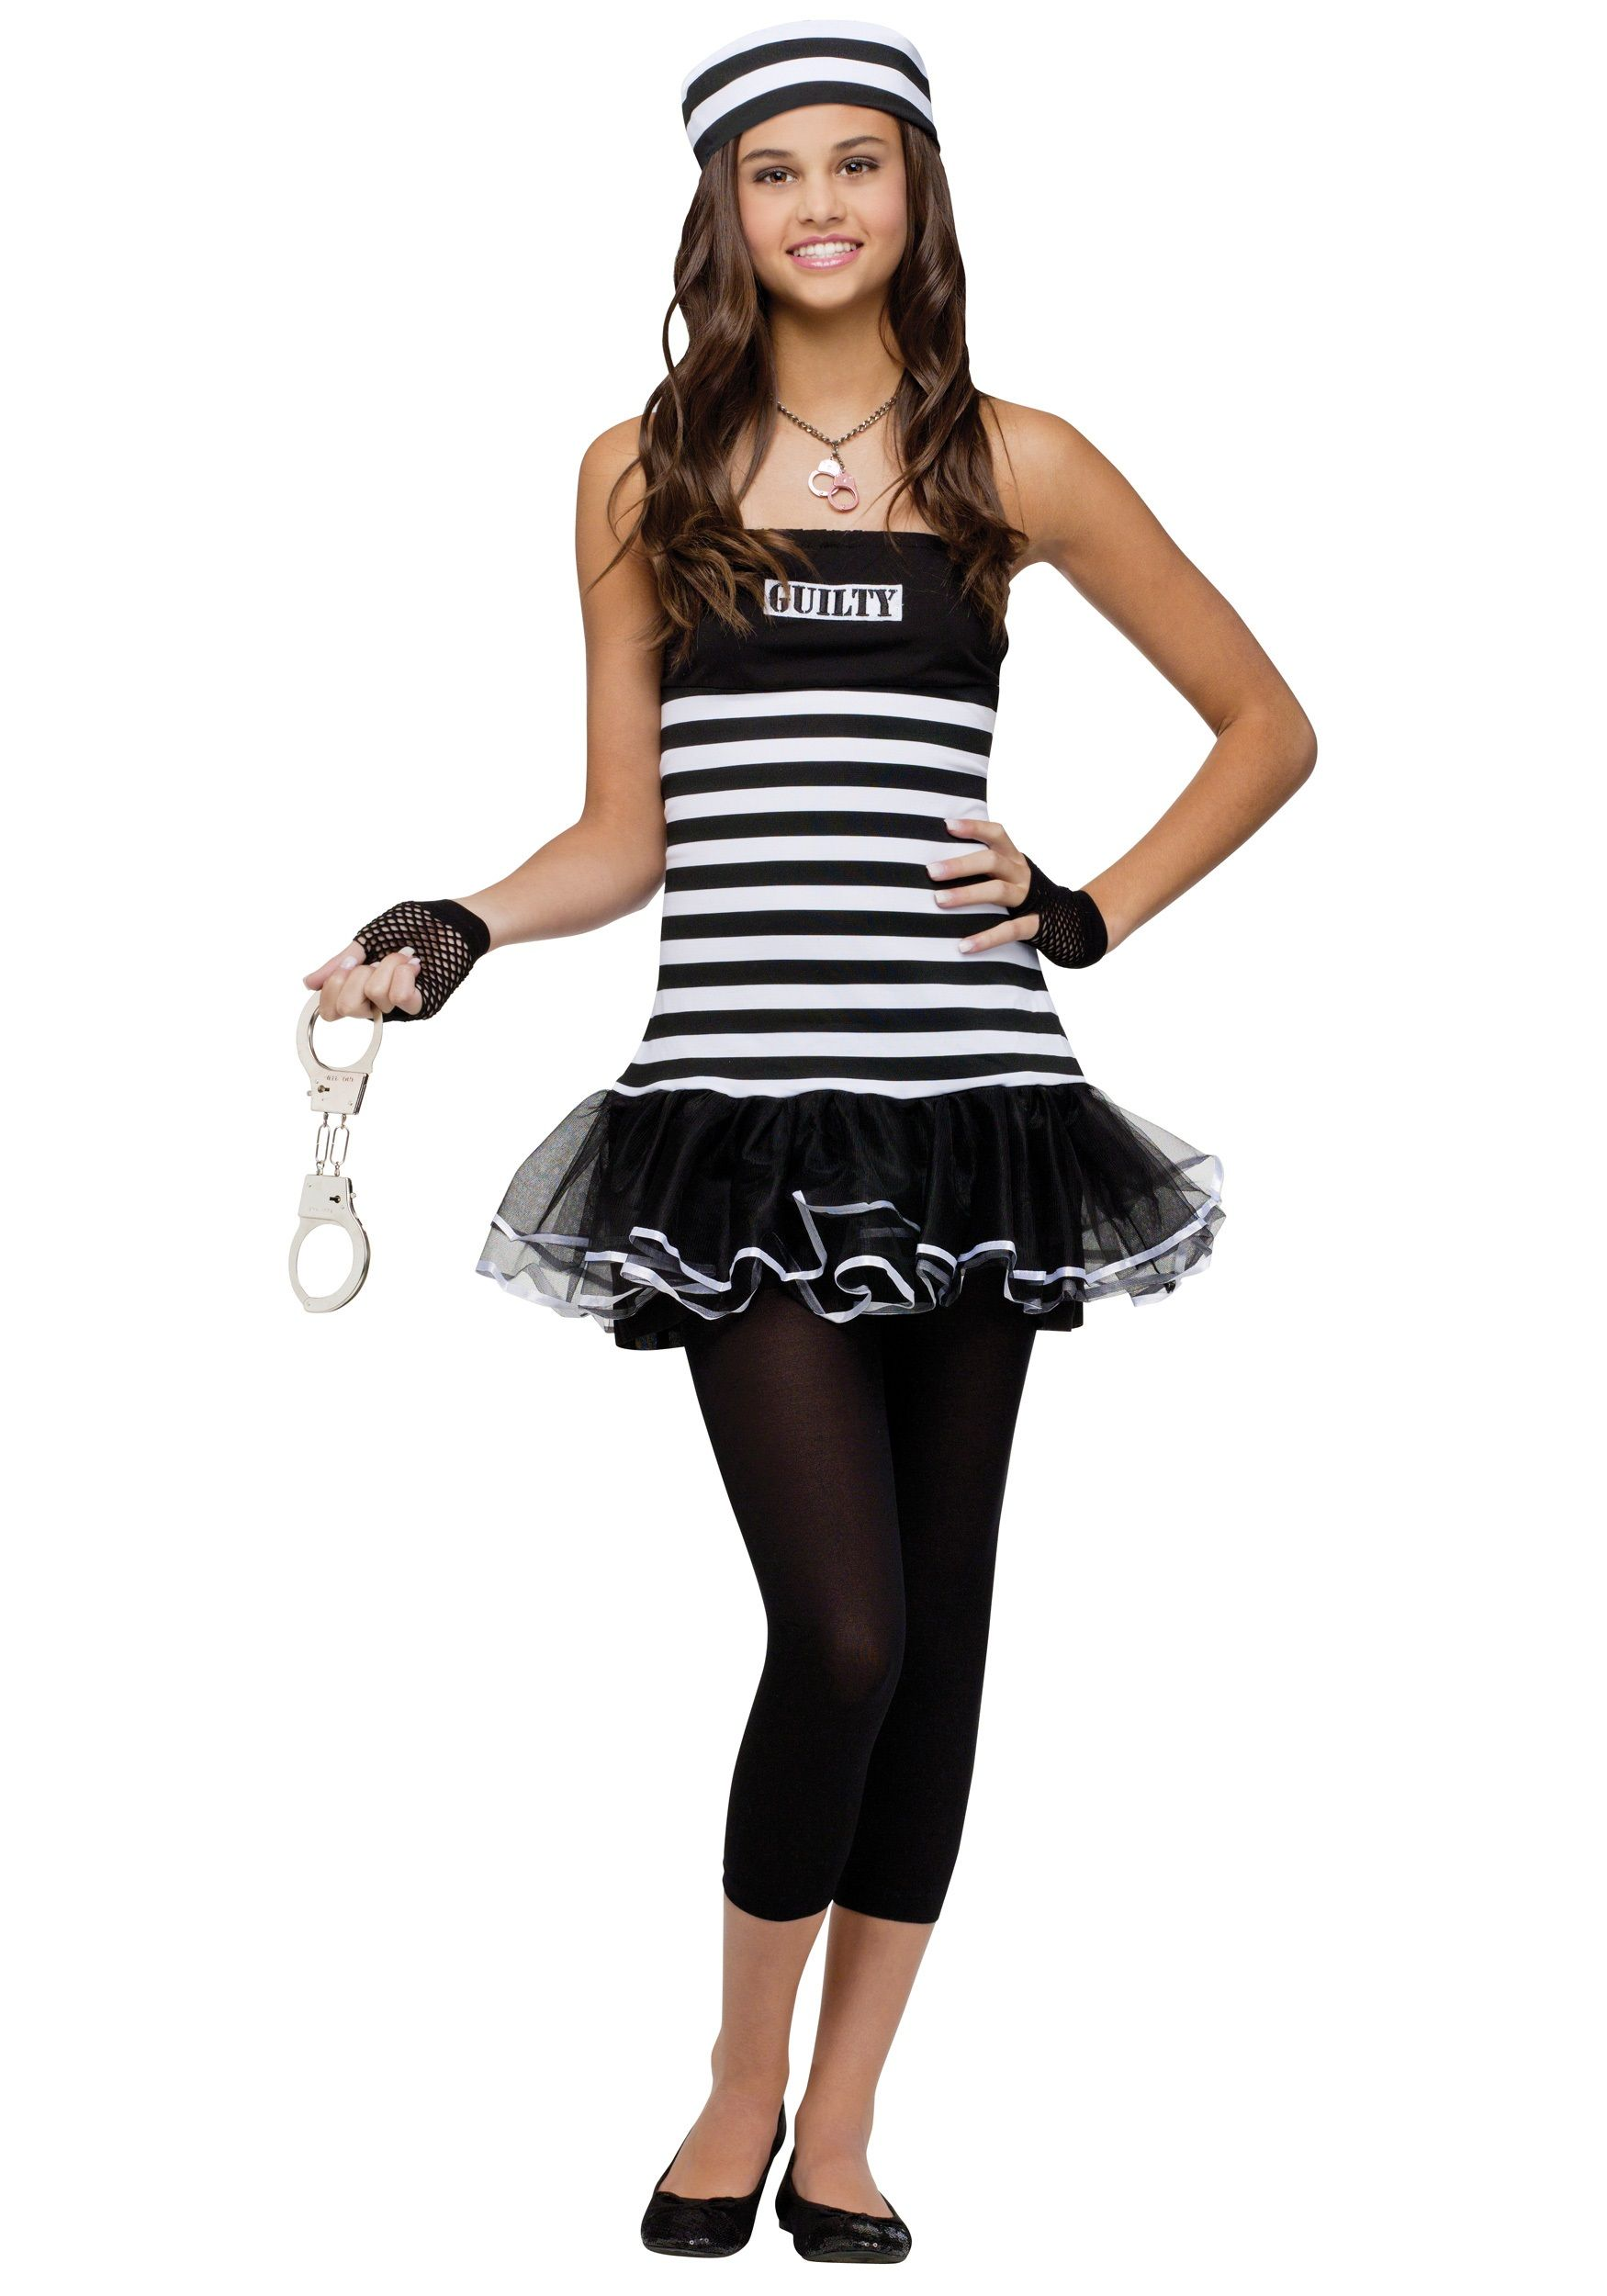 this teenage guilty prisoner costume is a must have to pair with police costumes check out all of our kids robber costumes and girls convict costume ideas